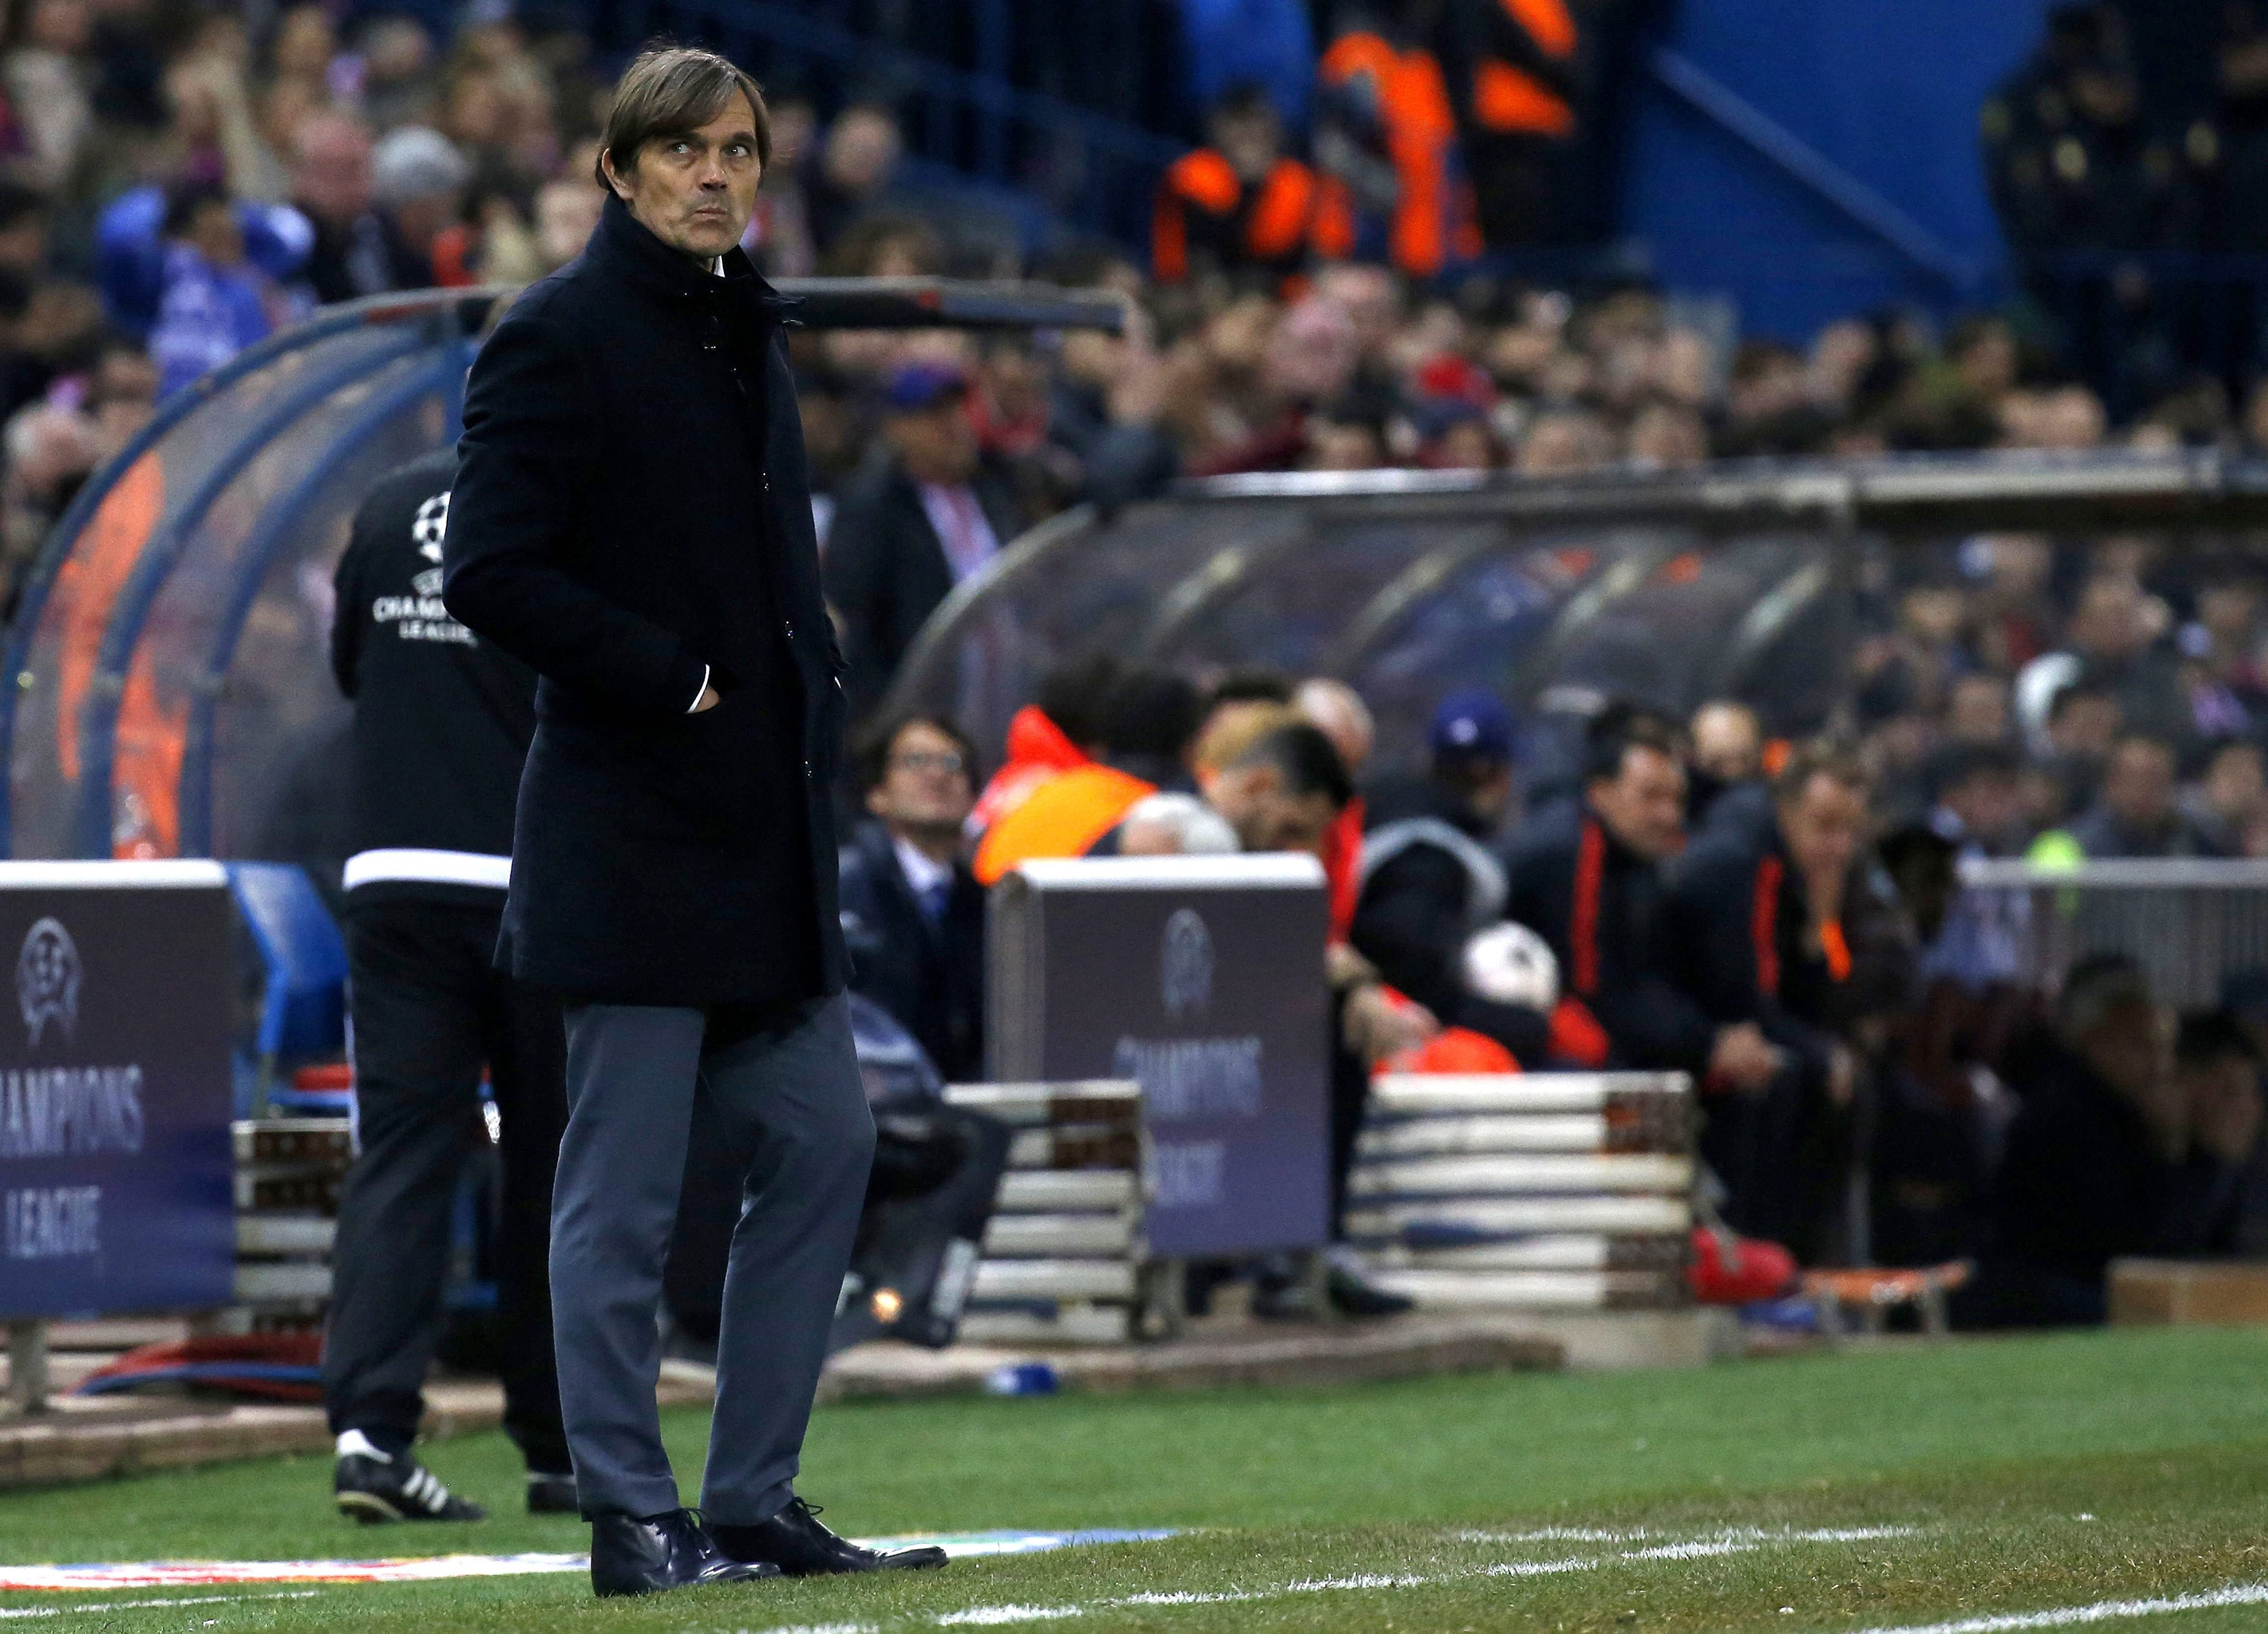 Phillip Cocu will be looking to lead Derby County to a win on Sunday